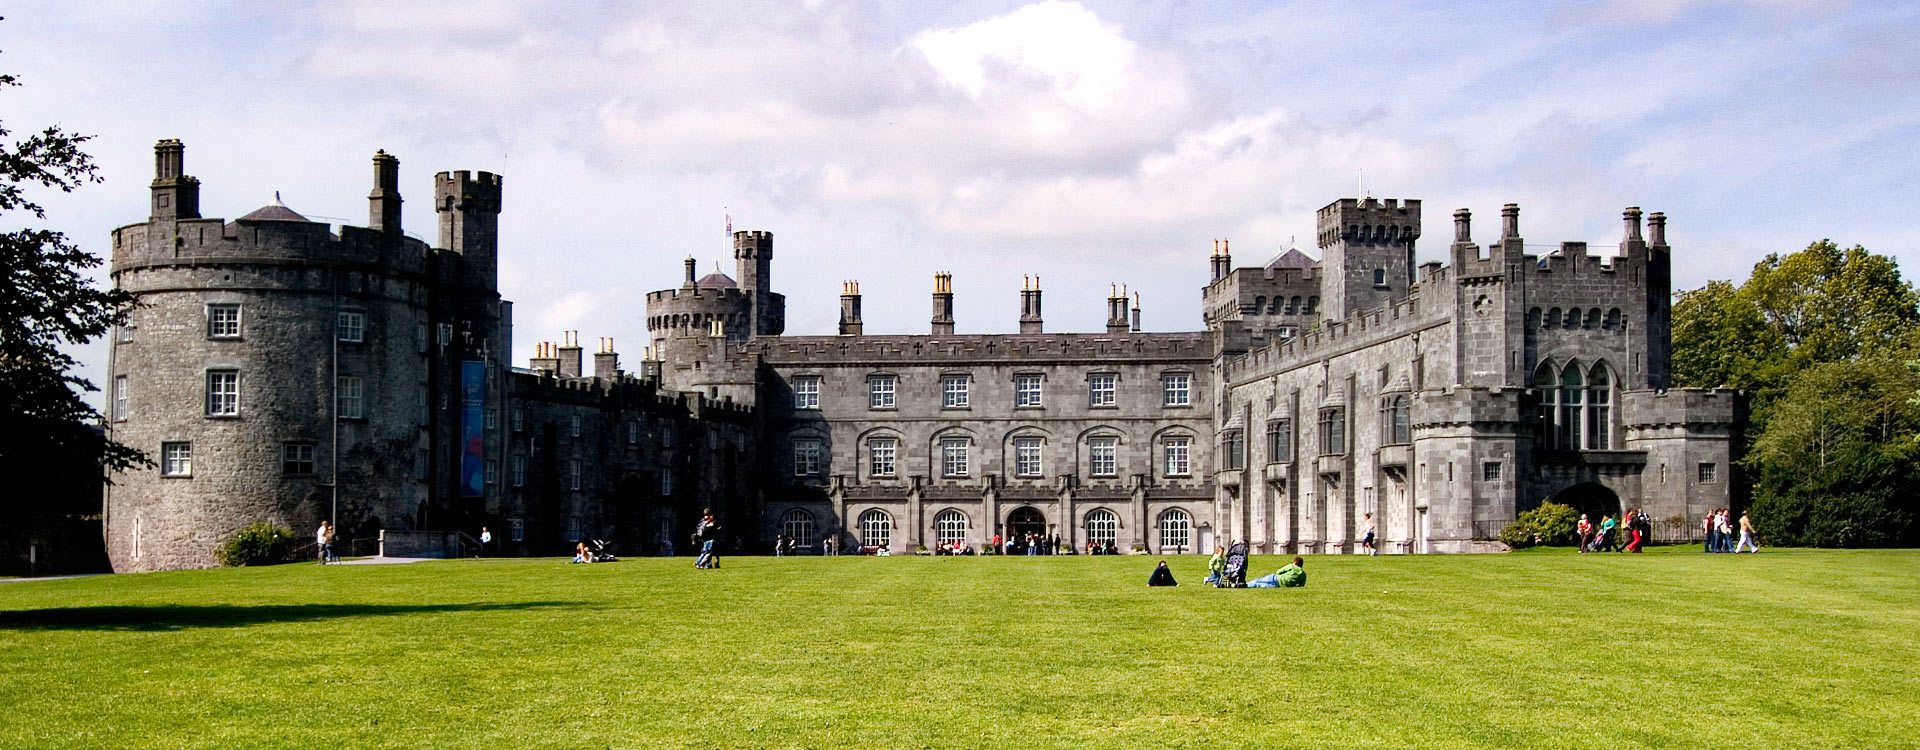 Melbourne to Kilkenny - 6 ways to travel via train, plane, and bus